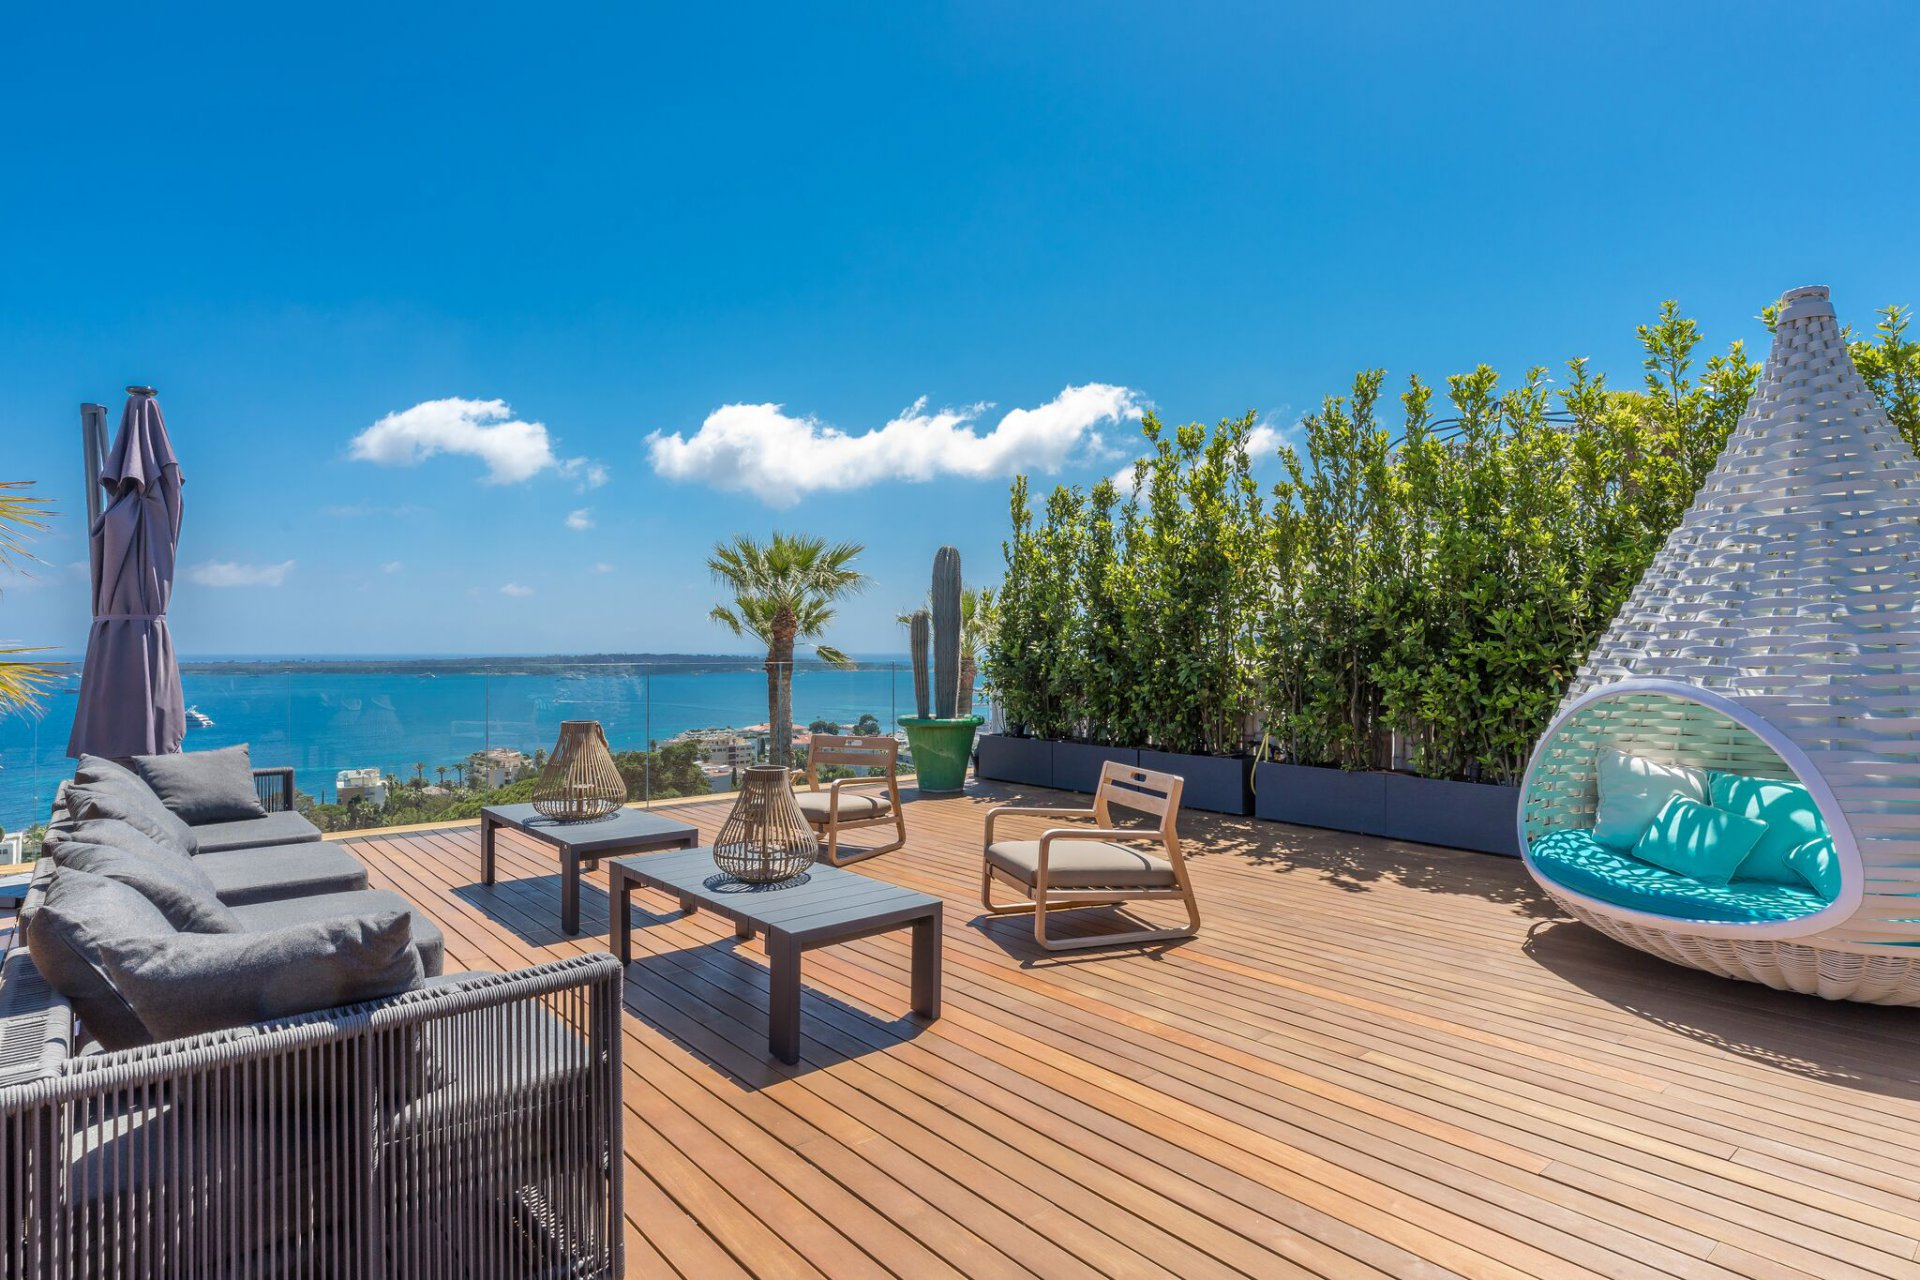 The decks and windows of this Cannes hillside penthouse open up to welcome a vast Côte d'Azur view.